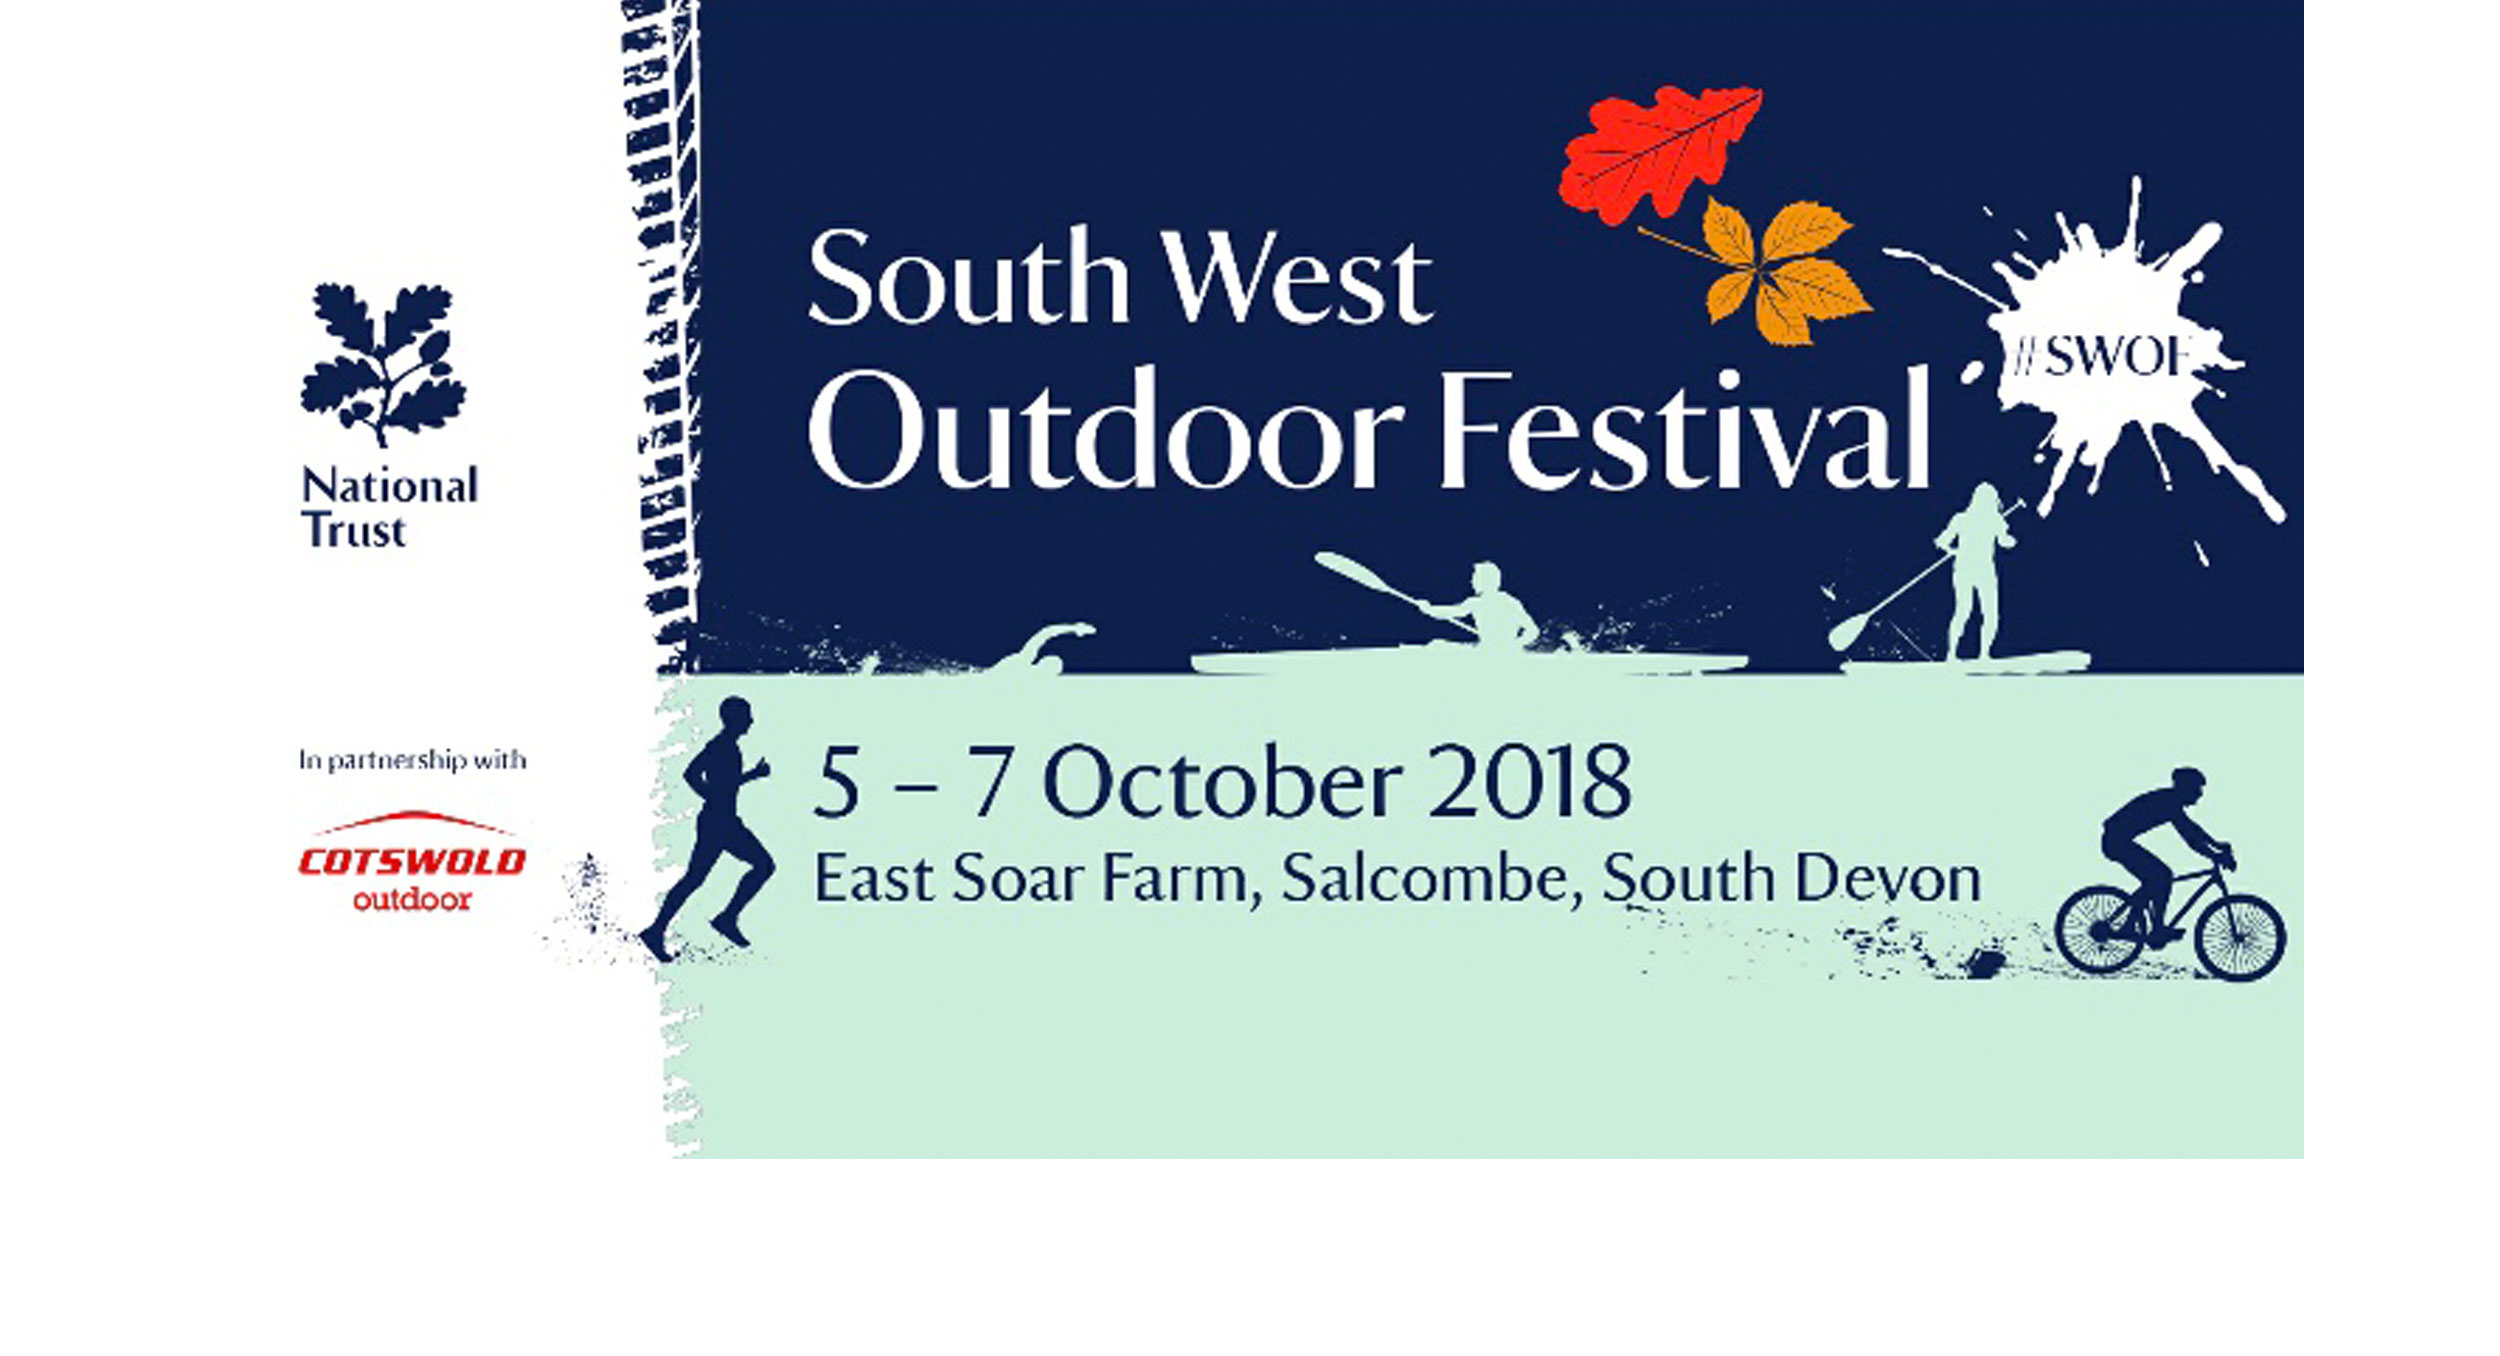 South-West-Outdoor-Festival.jpg